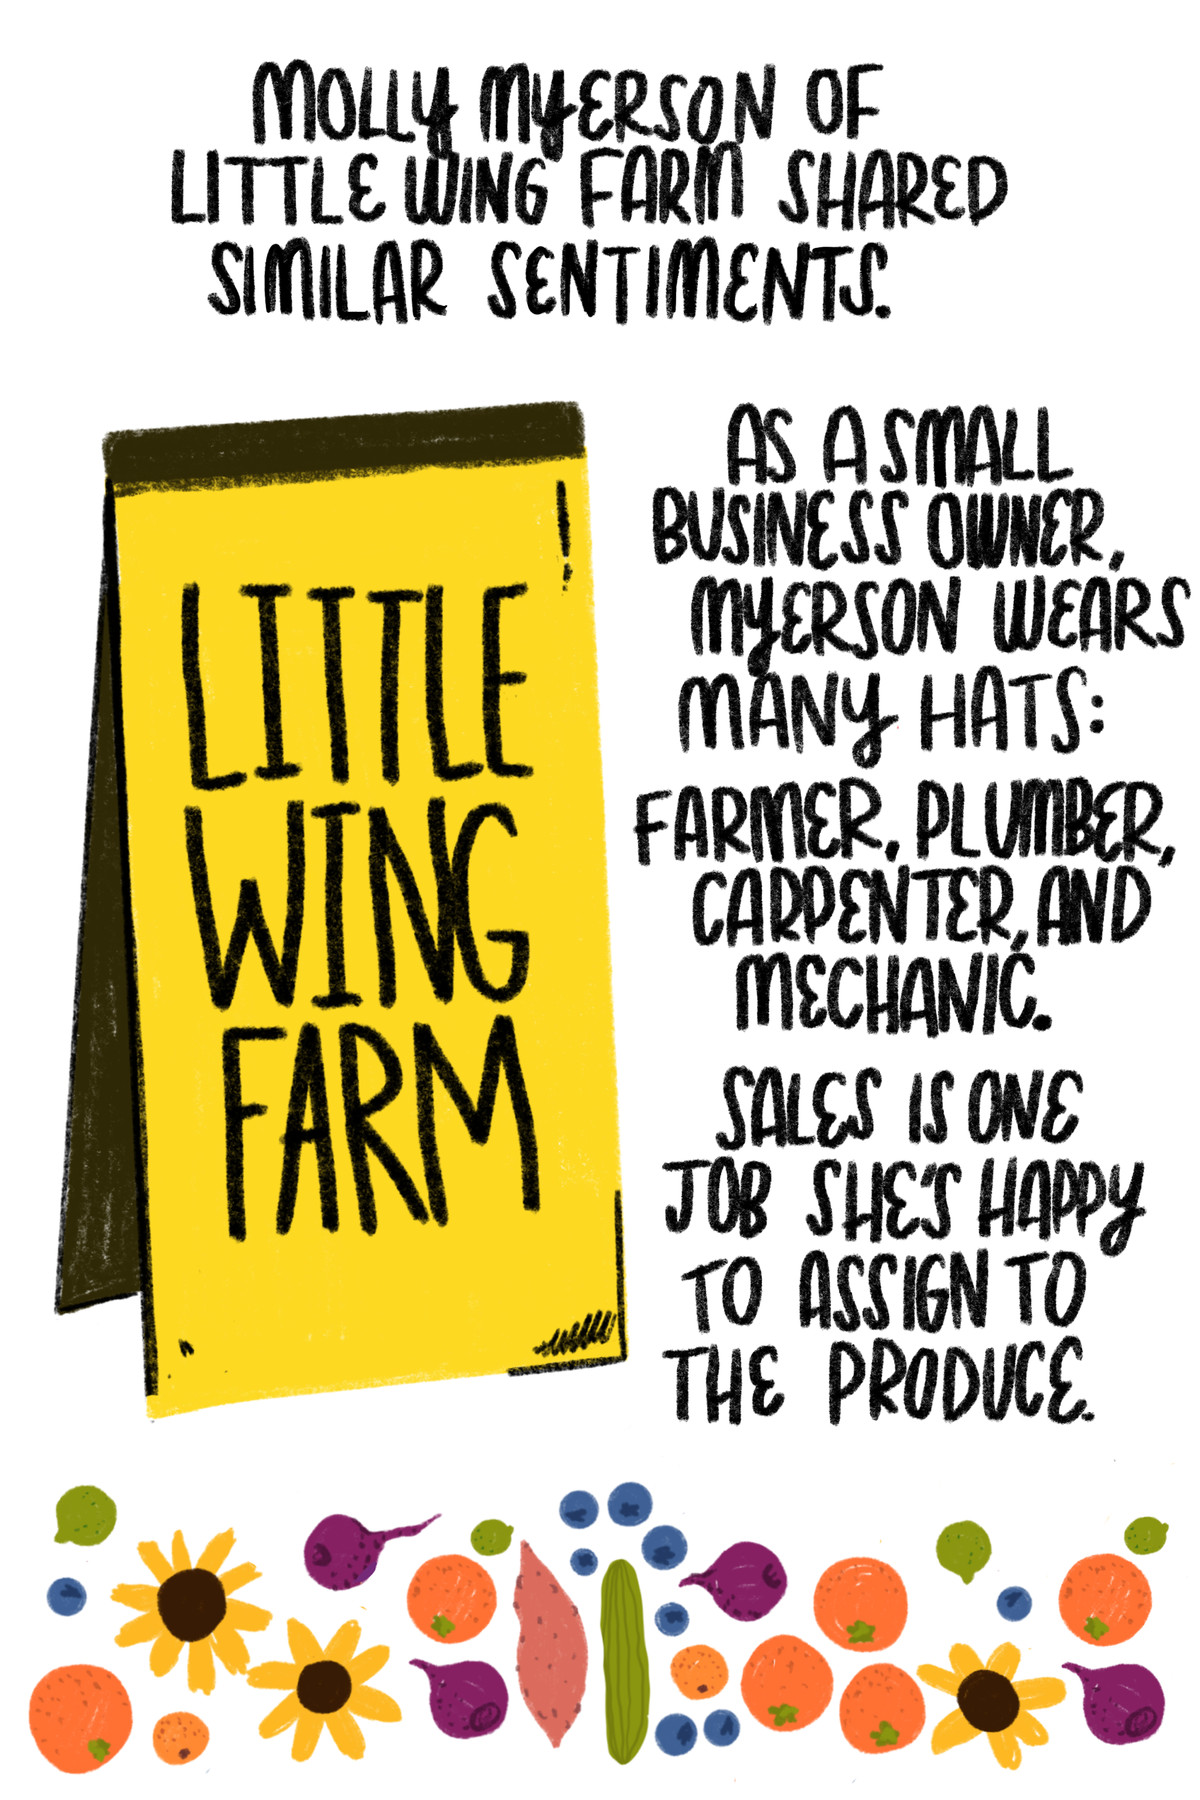 """""""Molly Meyerson of Little Wing Farm shared similar sentiments. As a small-business owner, Meyerson wears many hats: Farmer, carpenter, plumber, and mechanic. Sales is one job she's happy to assign to the produce."""" [A yellow sign next to the quote reads: Little Wing Farm.]"""